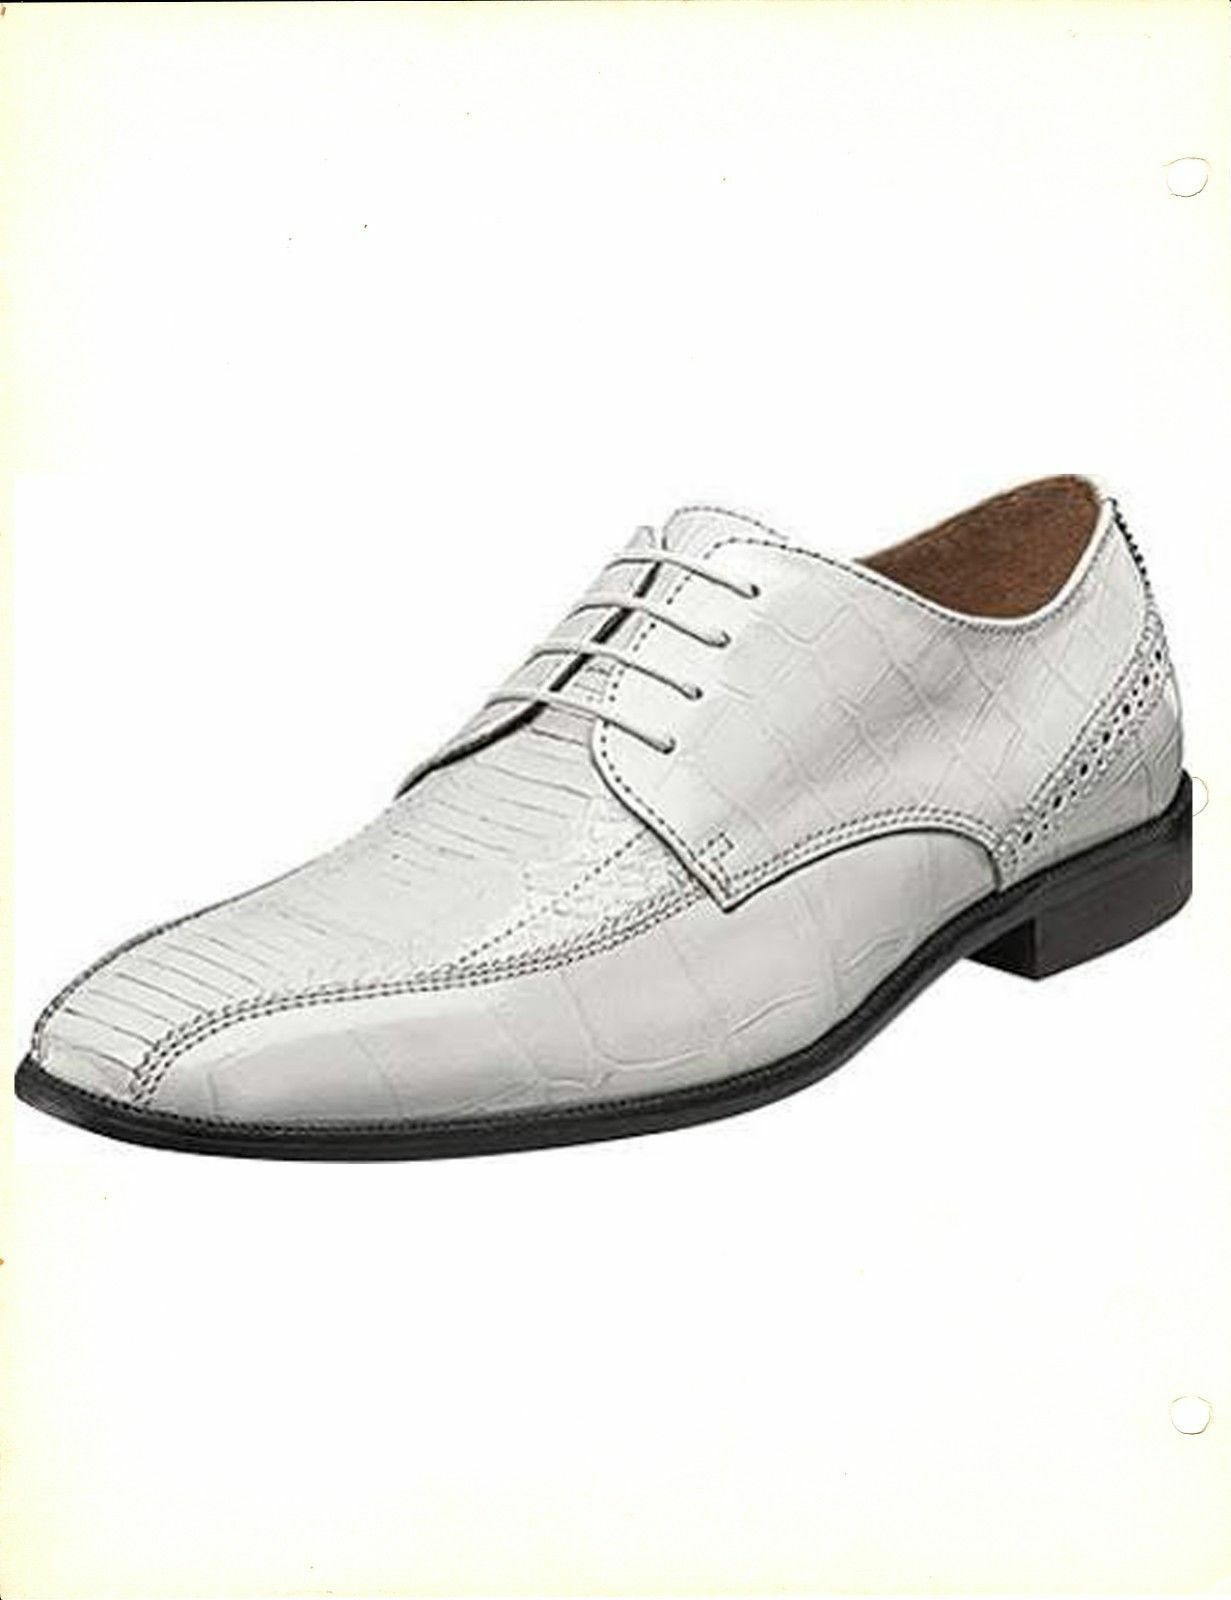 Stacy Adams Mens Piccard Dress shoes's 24792 100